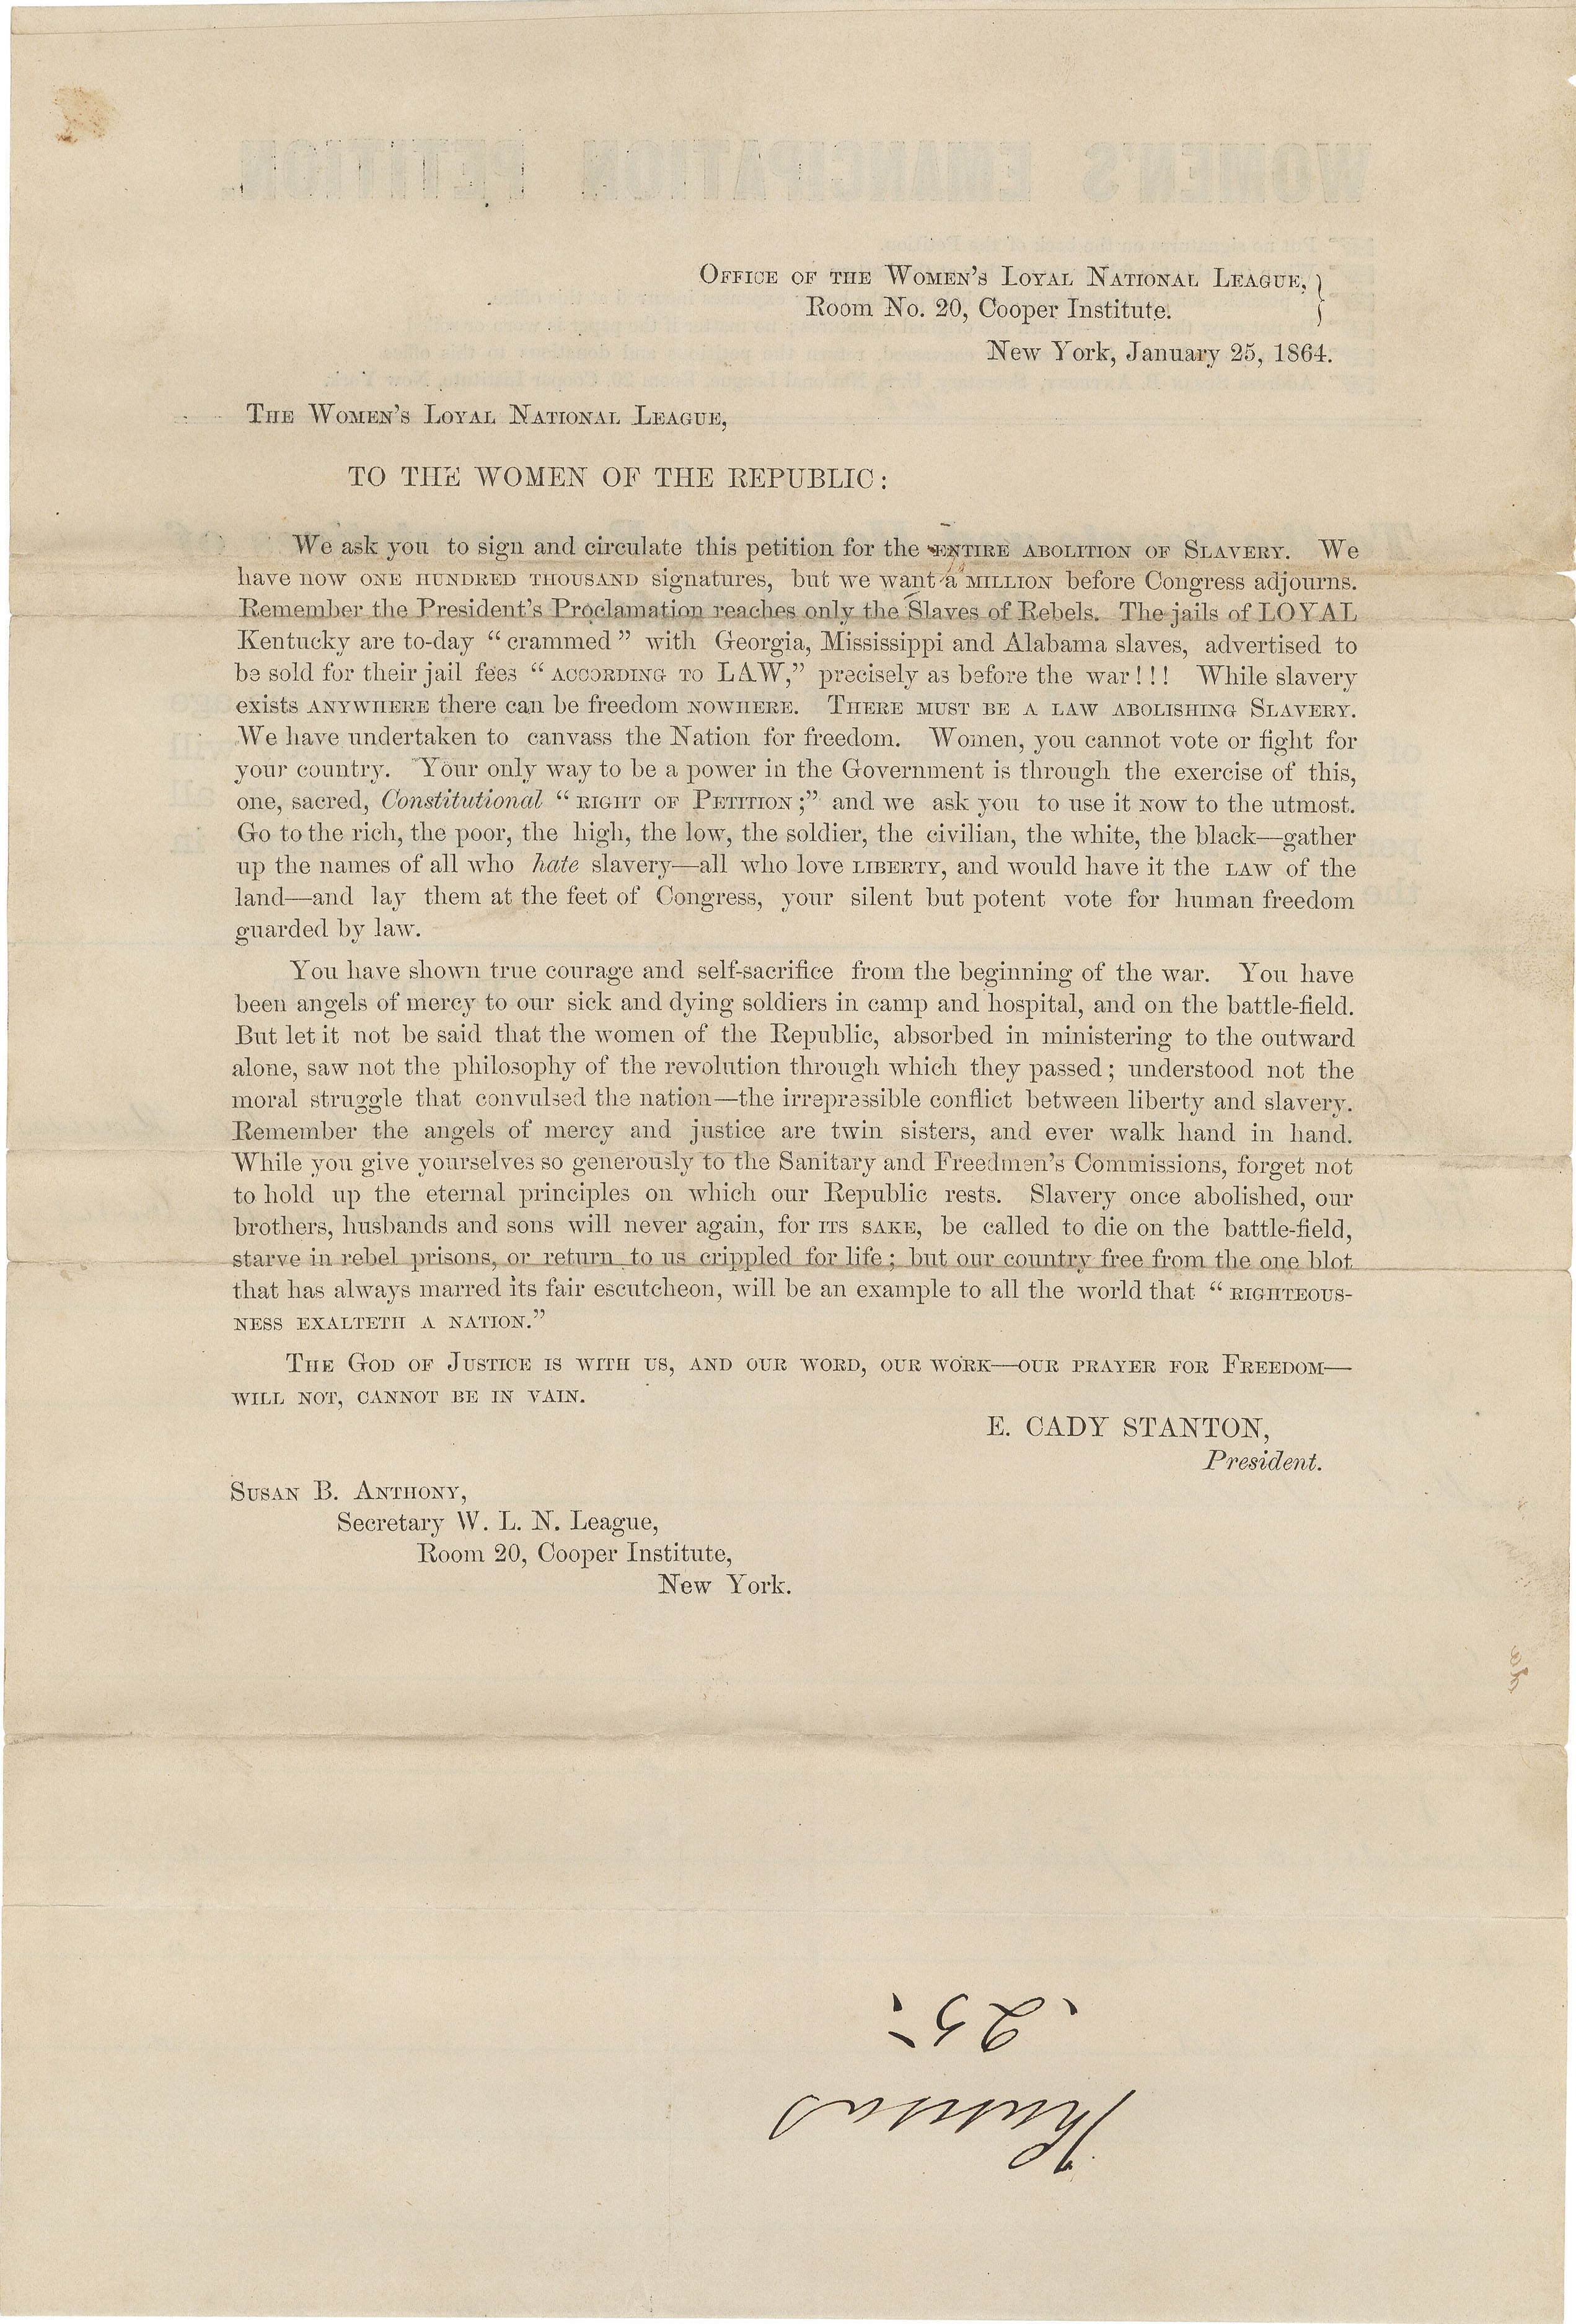 """""""To the Women of the Republic,"""" Address of the Women's Loyal National League Supporting the Abolition of Slavery, January 25, 1864. (National Archives Identifier 306400)"""